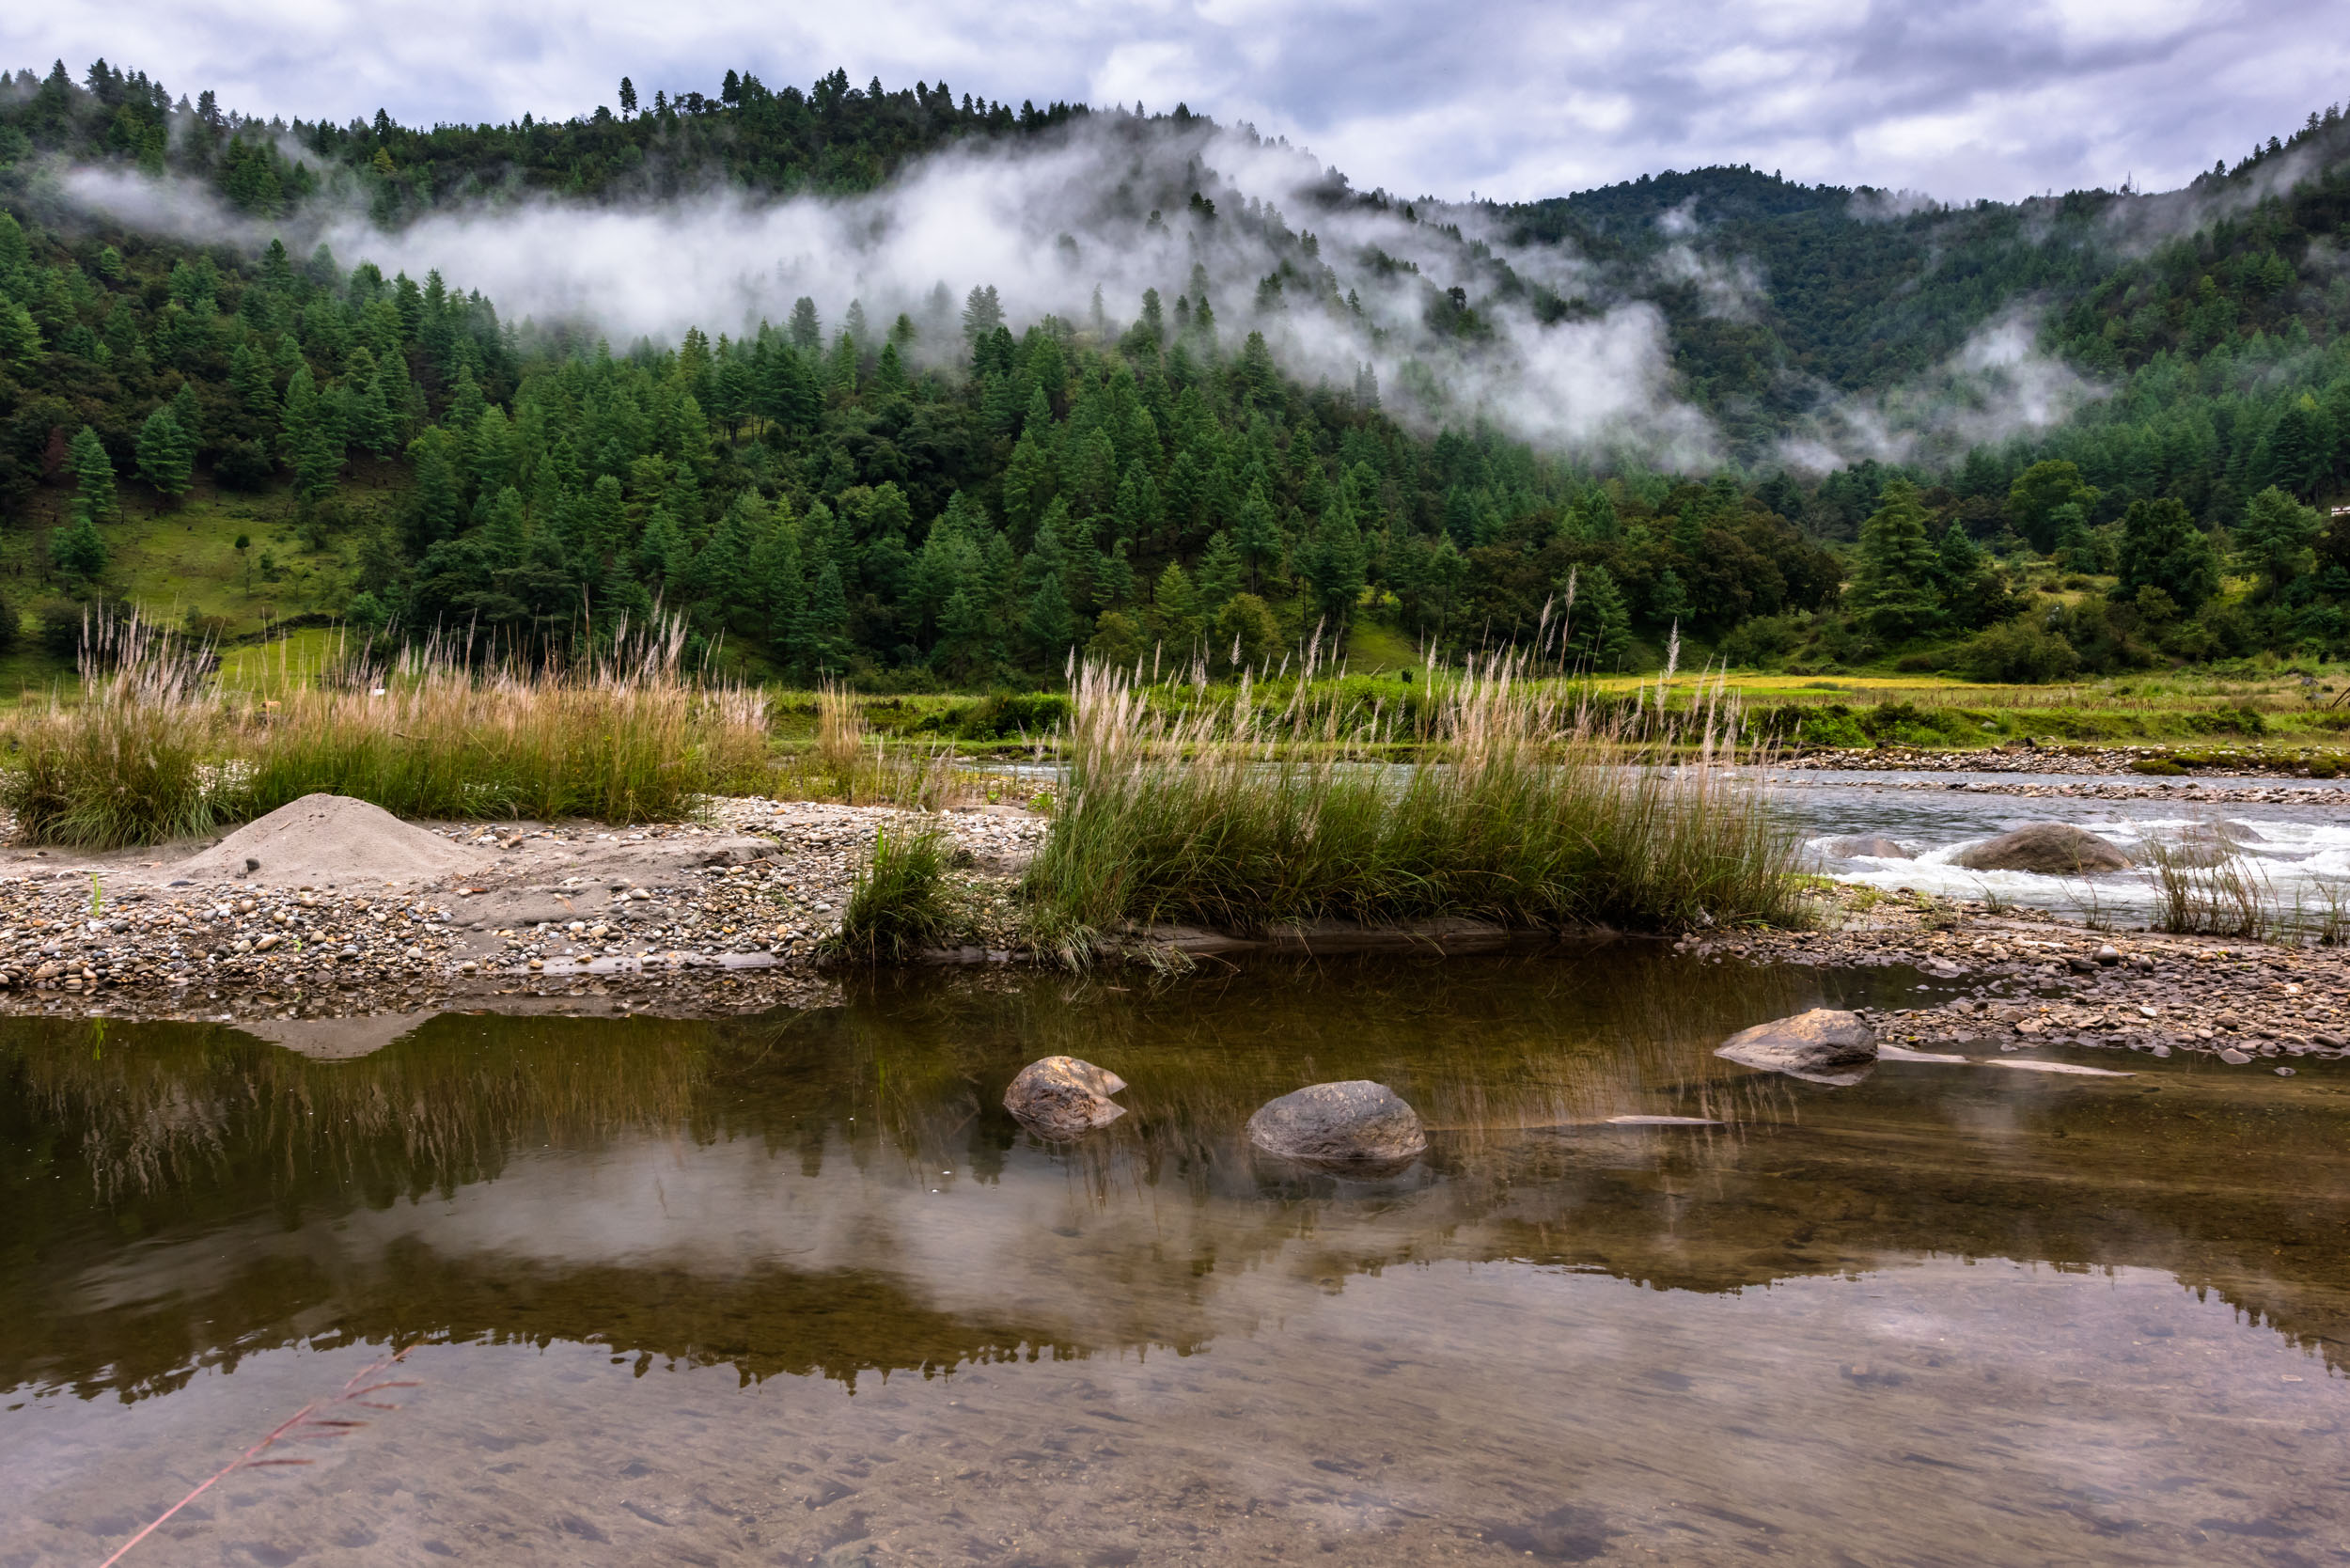 Reflections of Misty Mountains